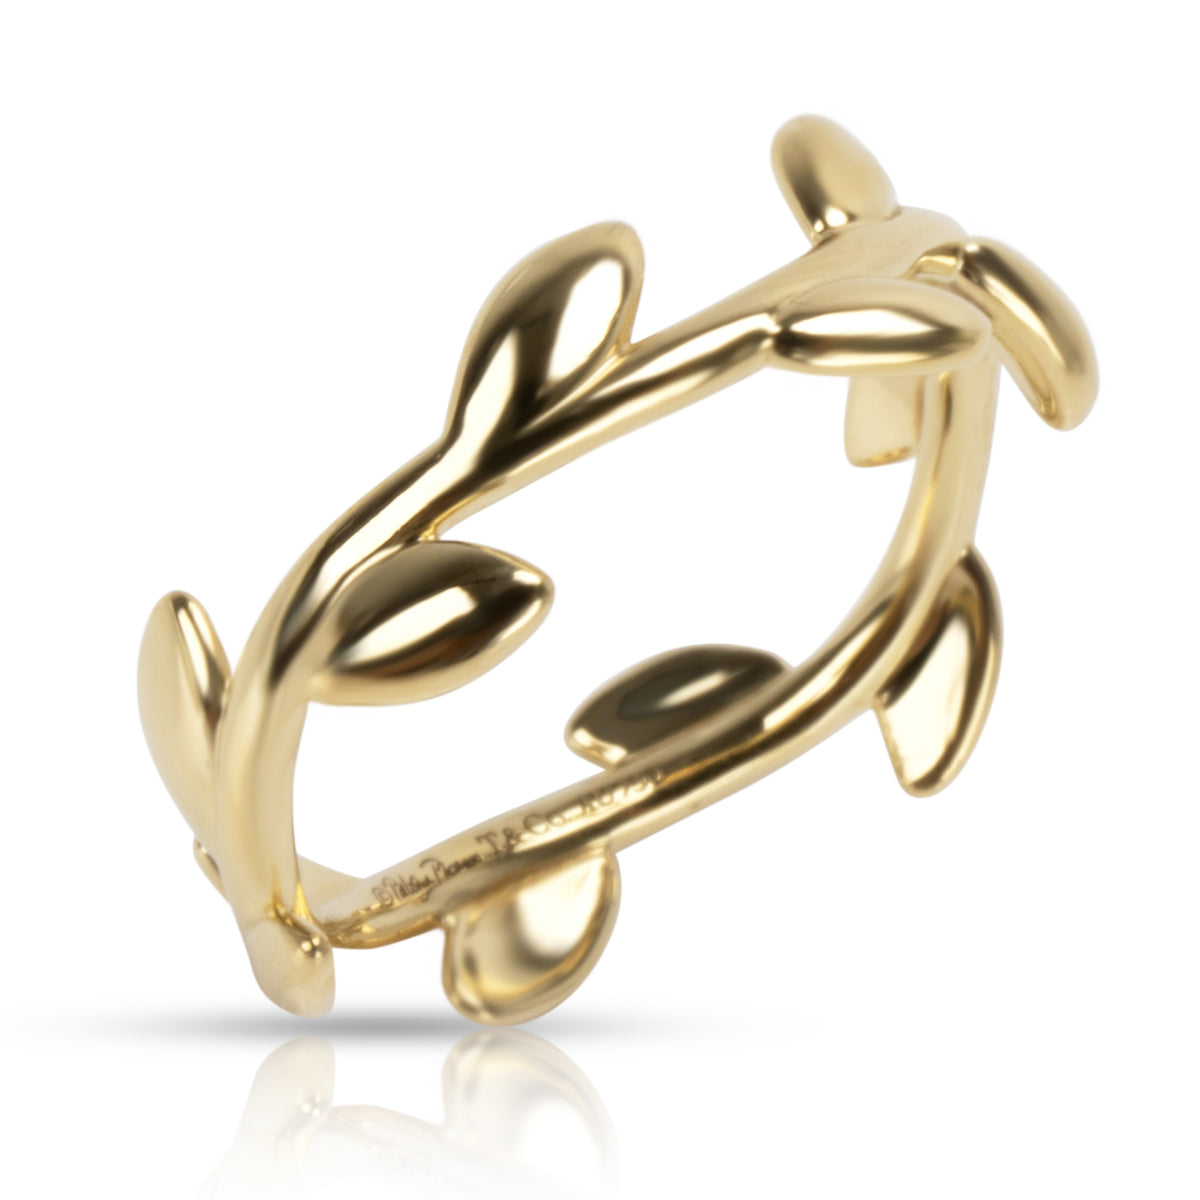 Tiffany & Co. Paloma Picasso Olive Vine Ring in 18K Yellow Gold